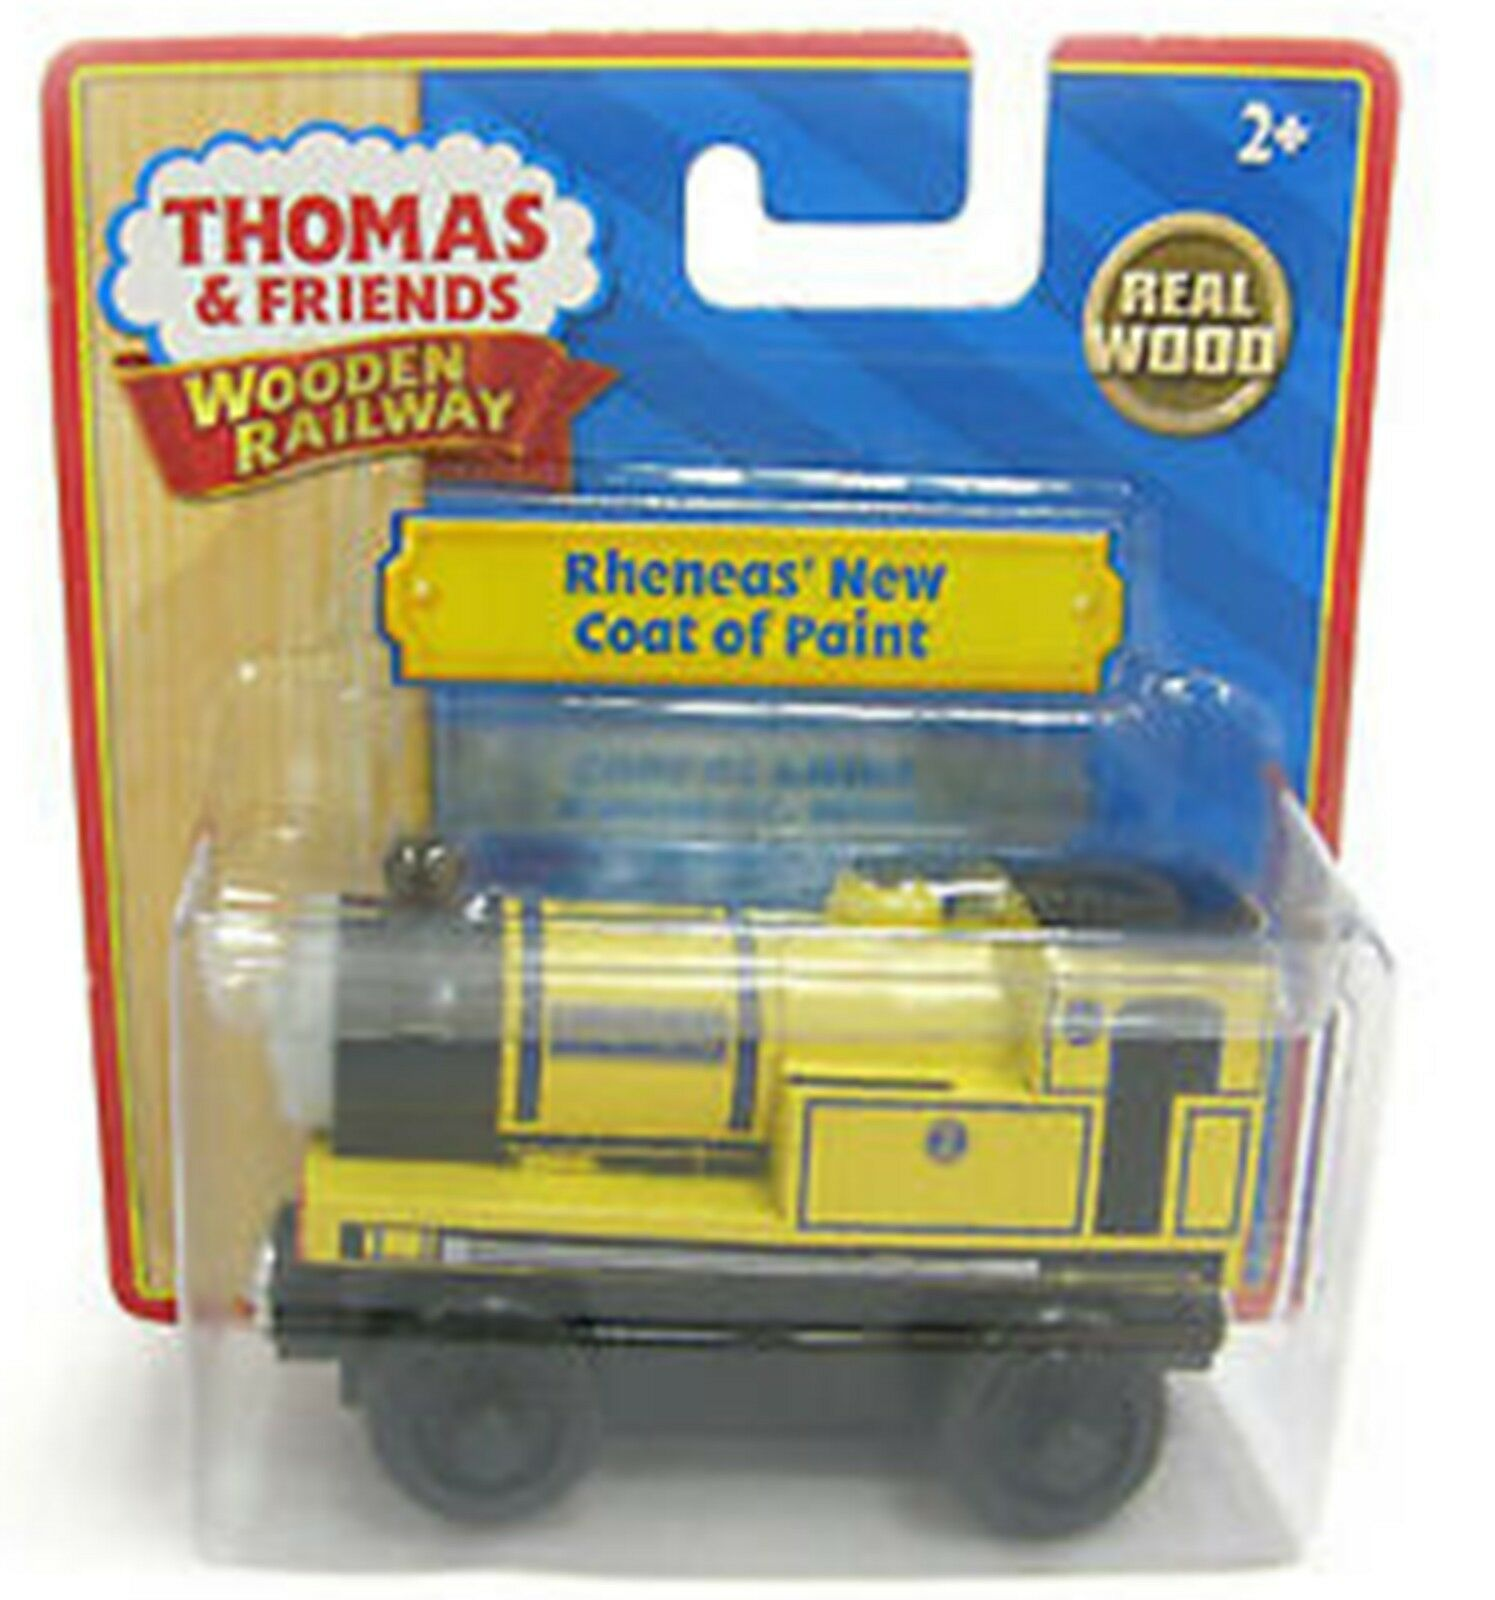 THOMAS & FRIENDS WOODEN RAILWAY   RHENEAS' NEW NEW NEW COAT OF PAINT  LC98175 MINT 3259a1